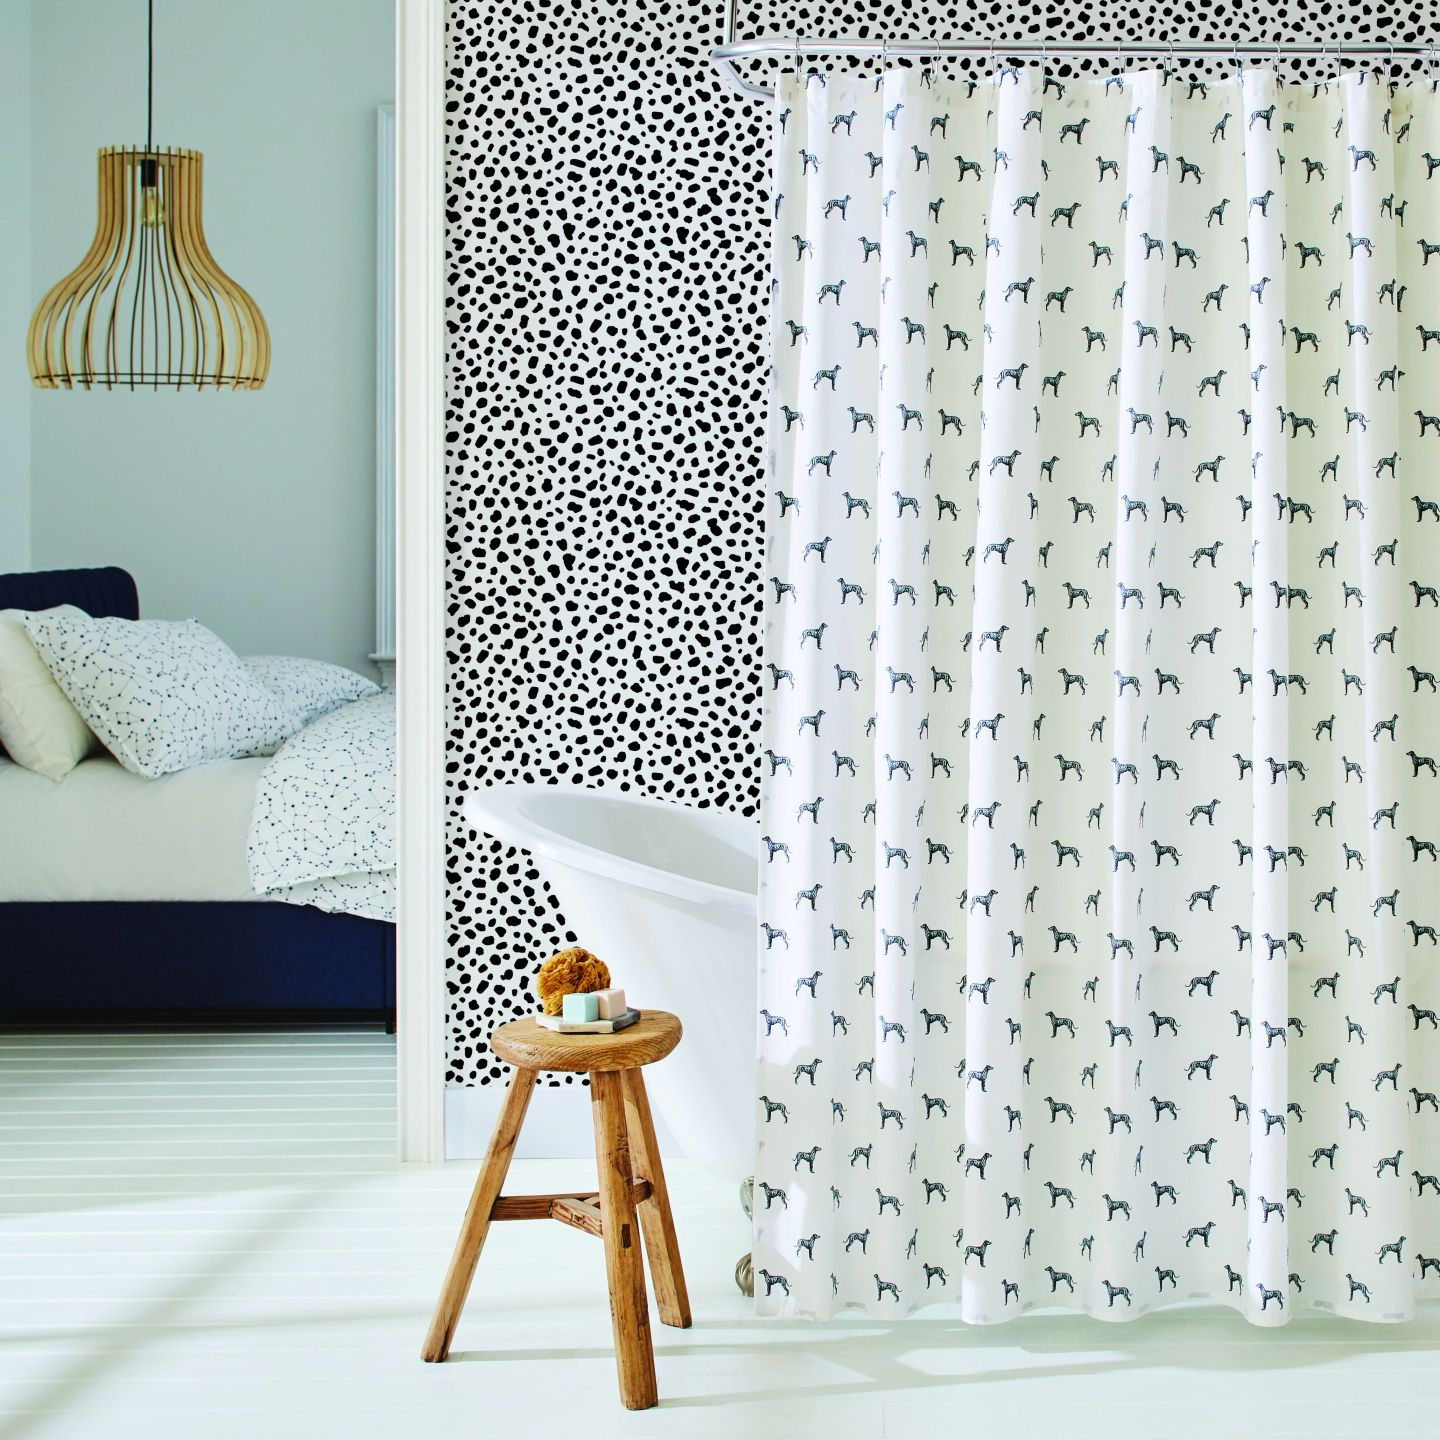 Tempaper_The-Novogratz_Scout_Pepper_Print_7 How to Add Wallpaper to Your Room with Inspiration from Novogratz